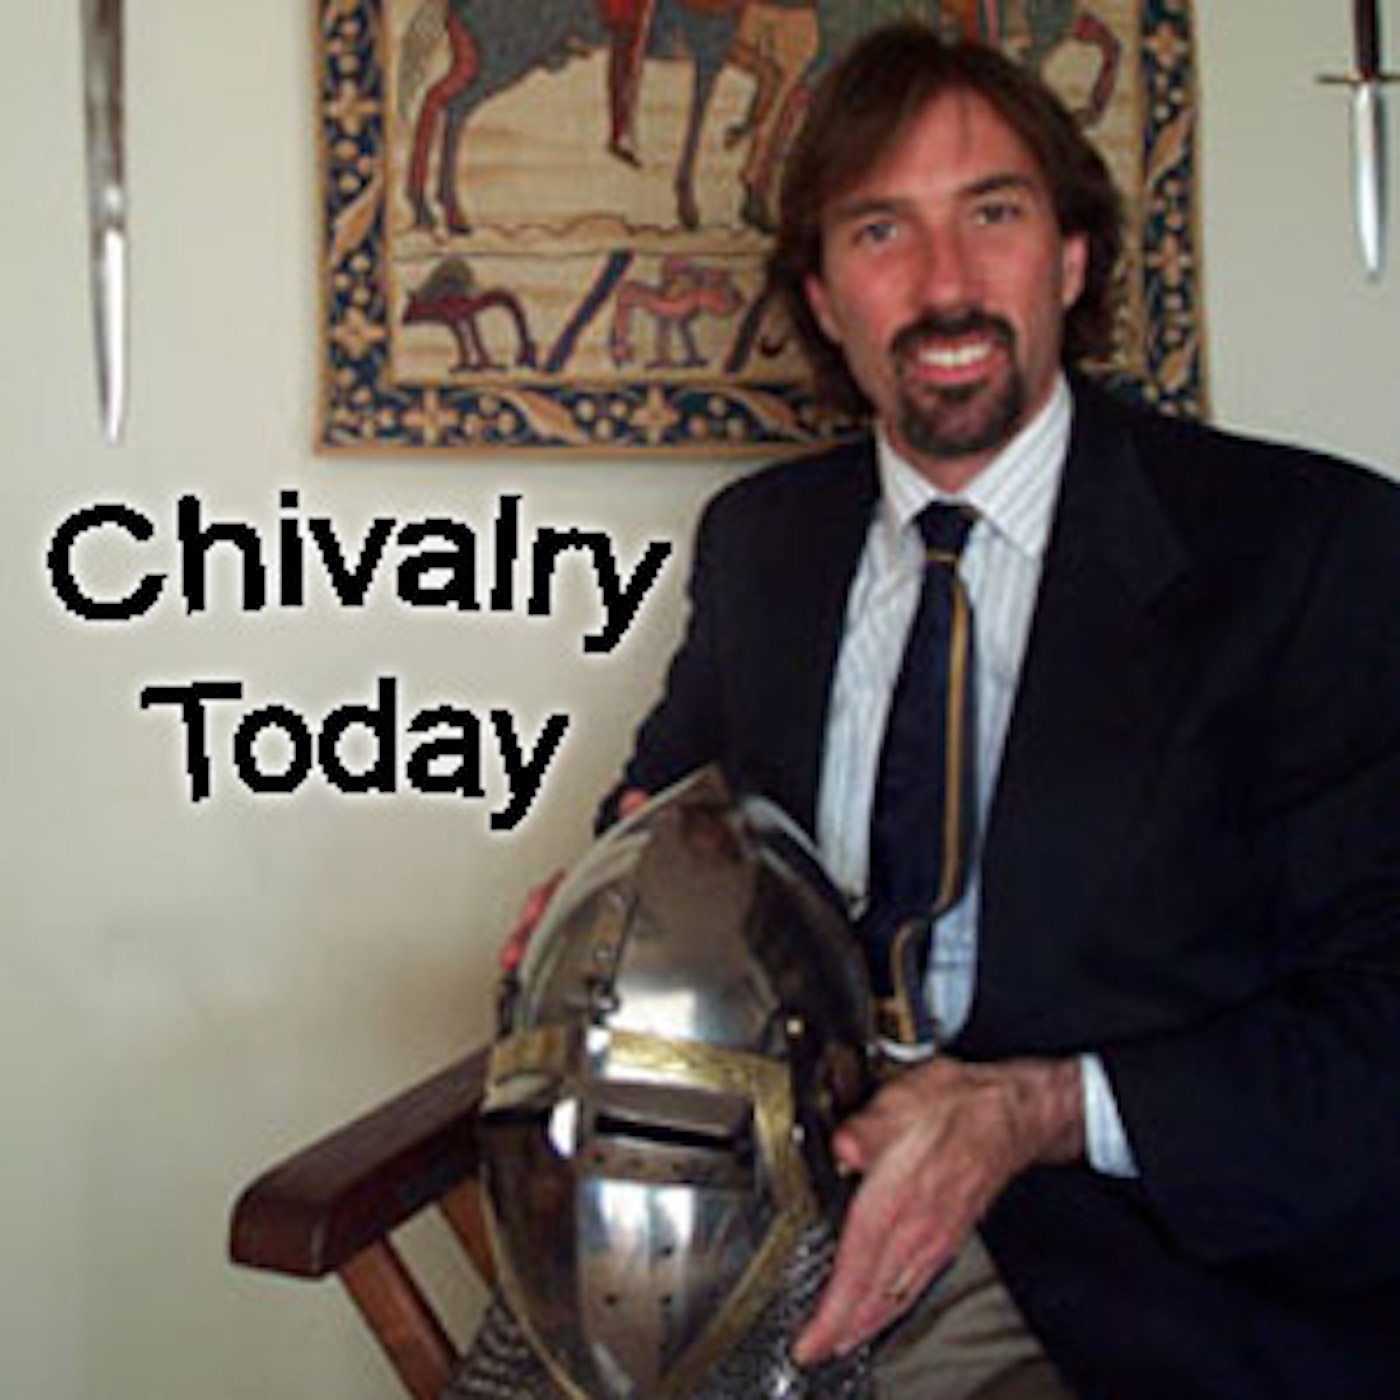 Chivalry Today Podcast